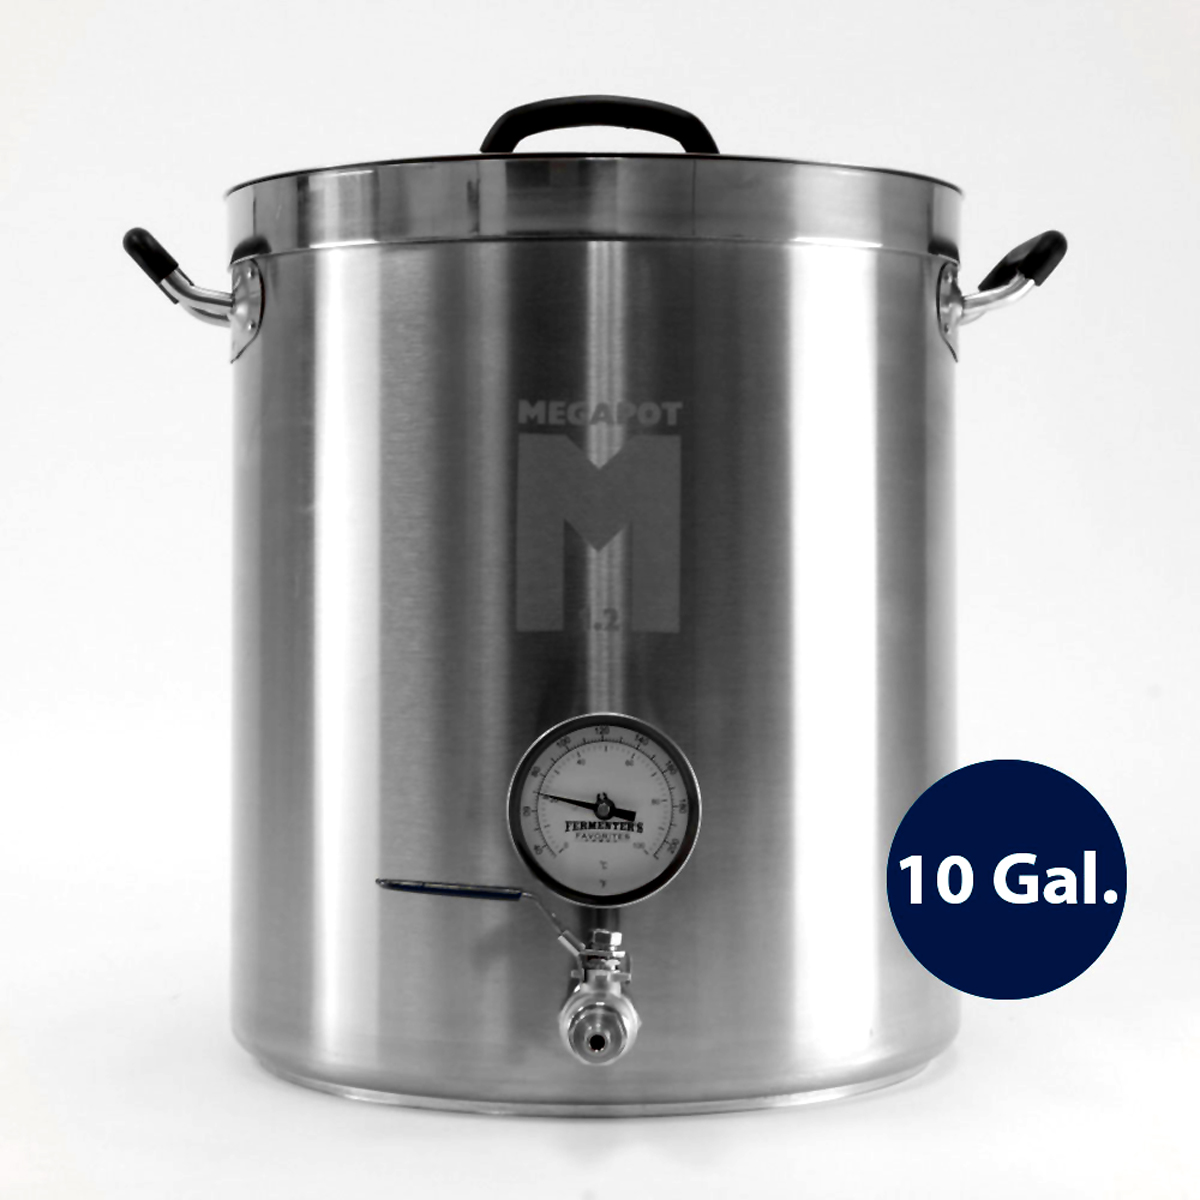 If you're not sure how to select a home brew kit, you're in luck. We've provided you five excellent choices in the product list above, along with this buying guide to choosing and using a home beer-brewing kit. At BestReviews, we aim to provide accurate, unbiased advice to our readers.